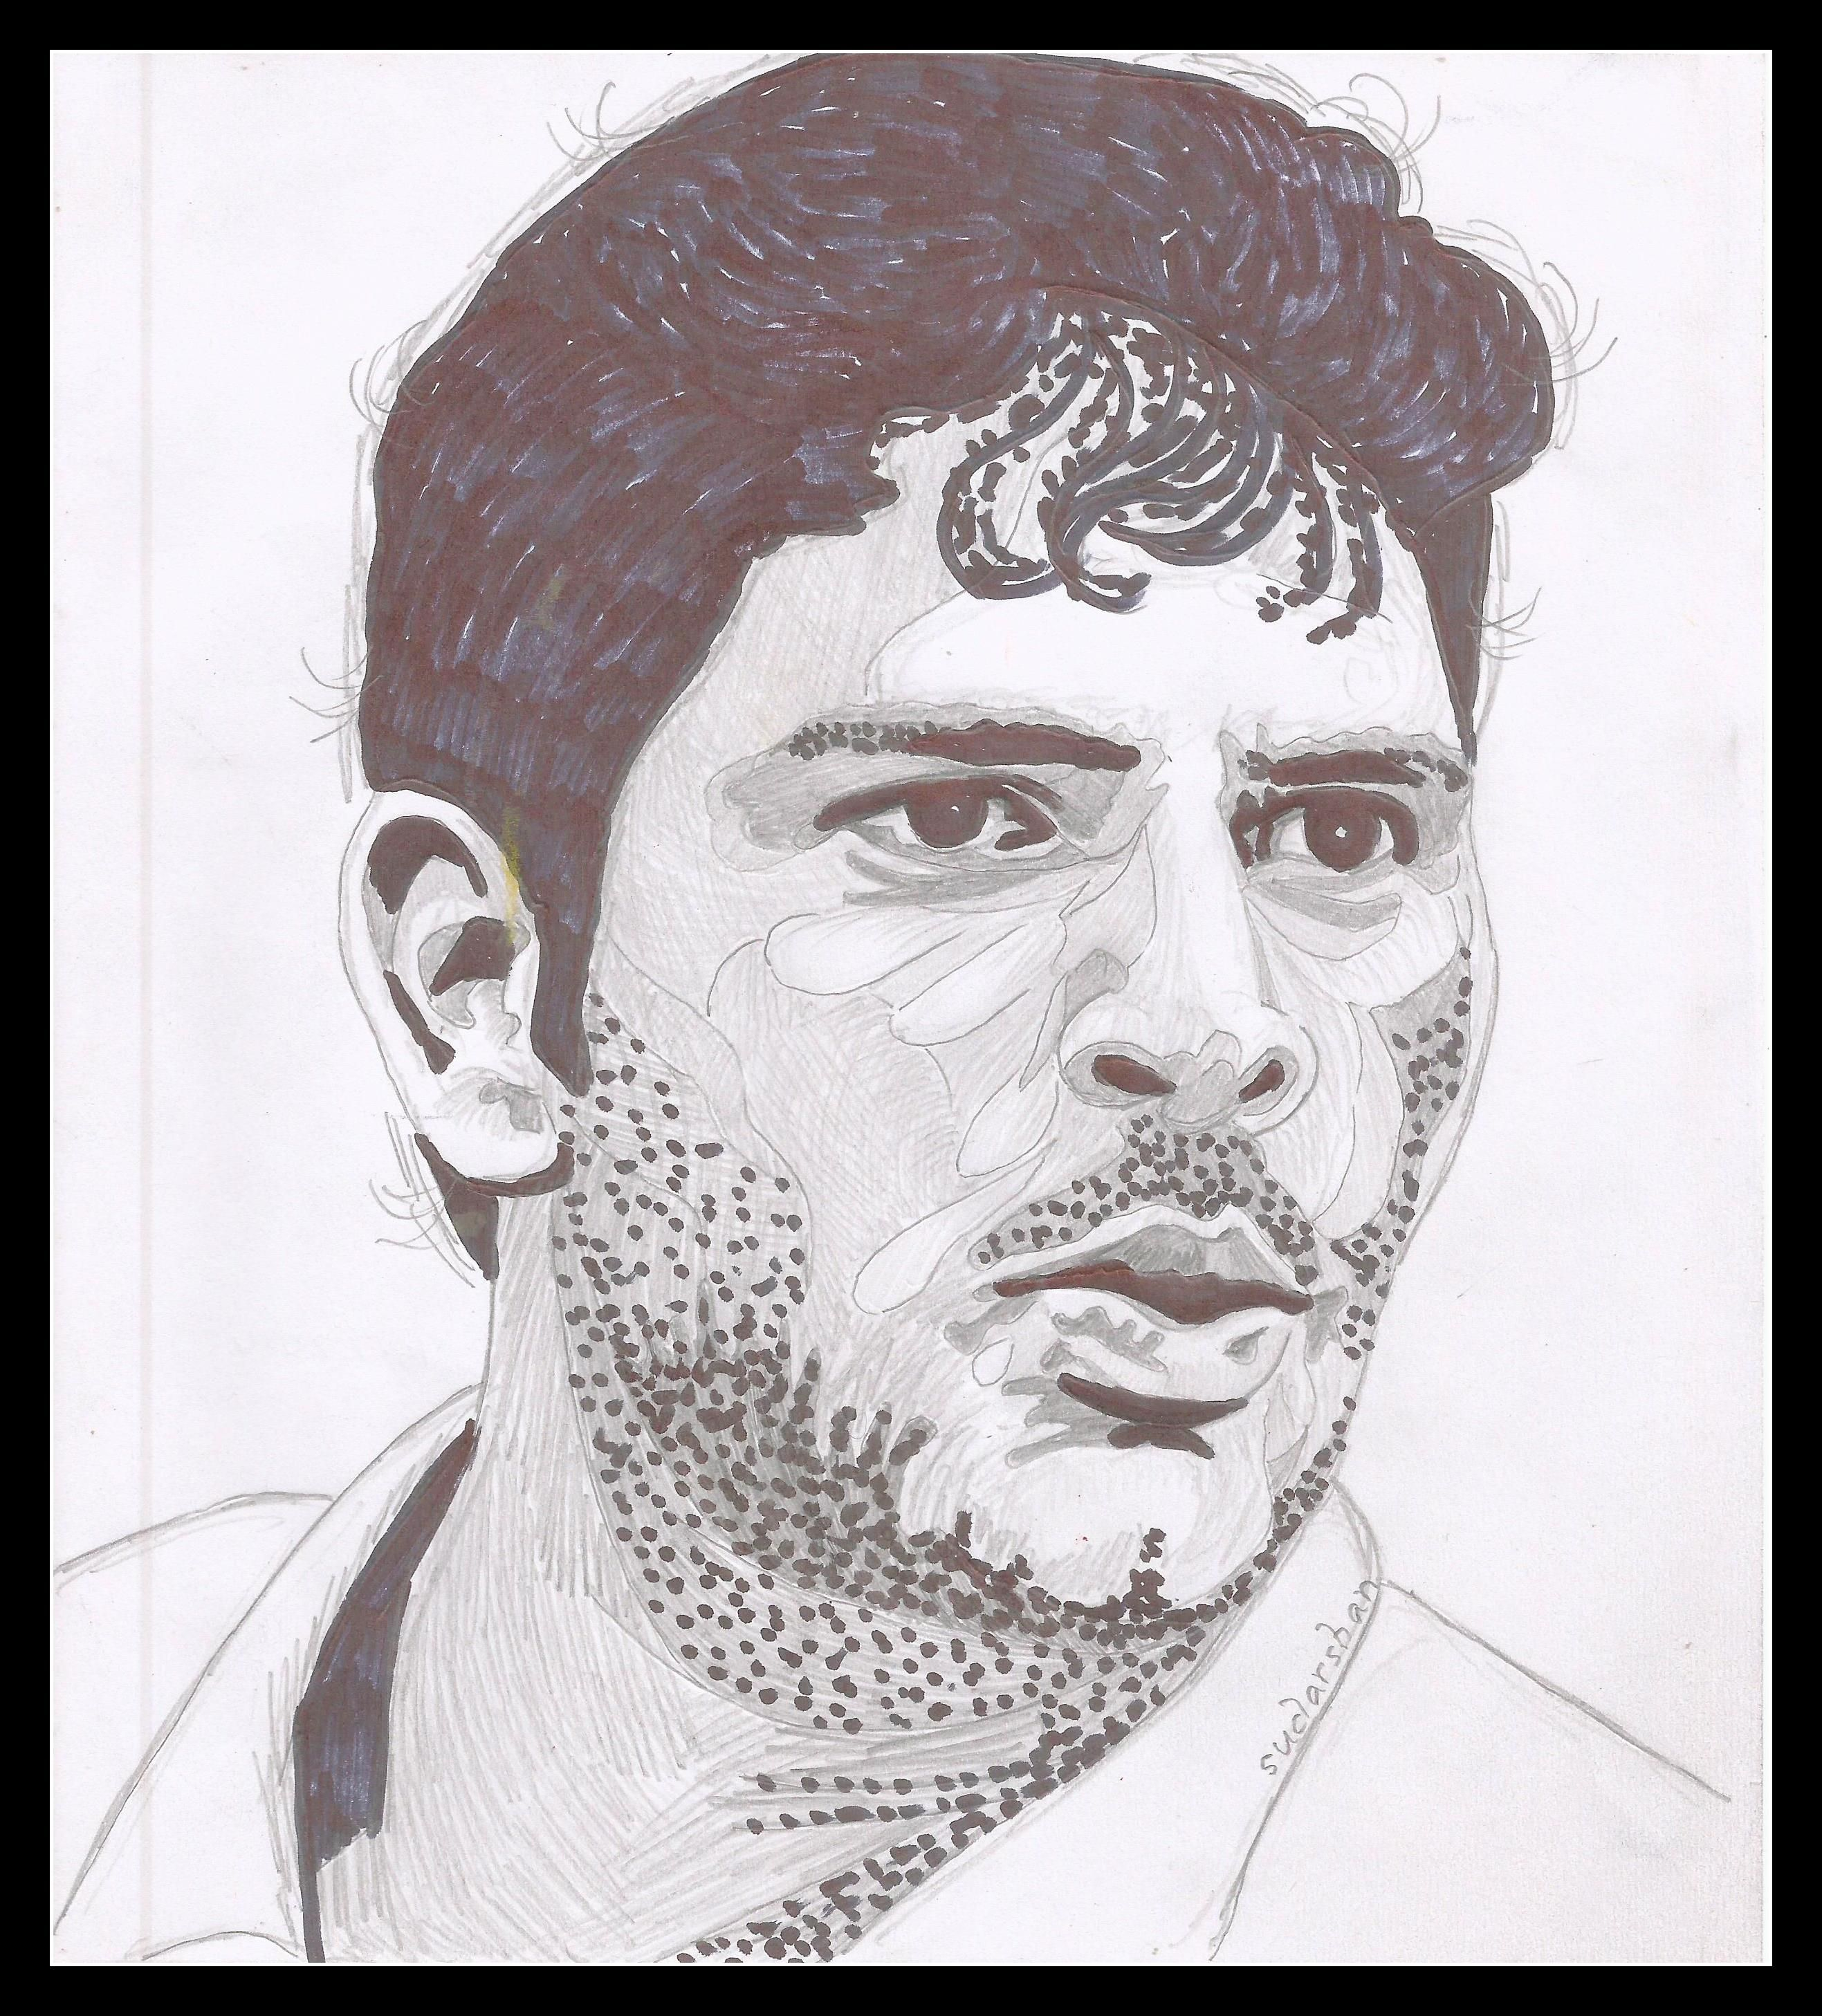 Sketches of yuvraj singh under town